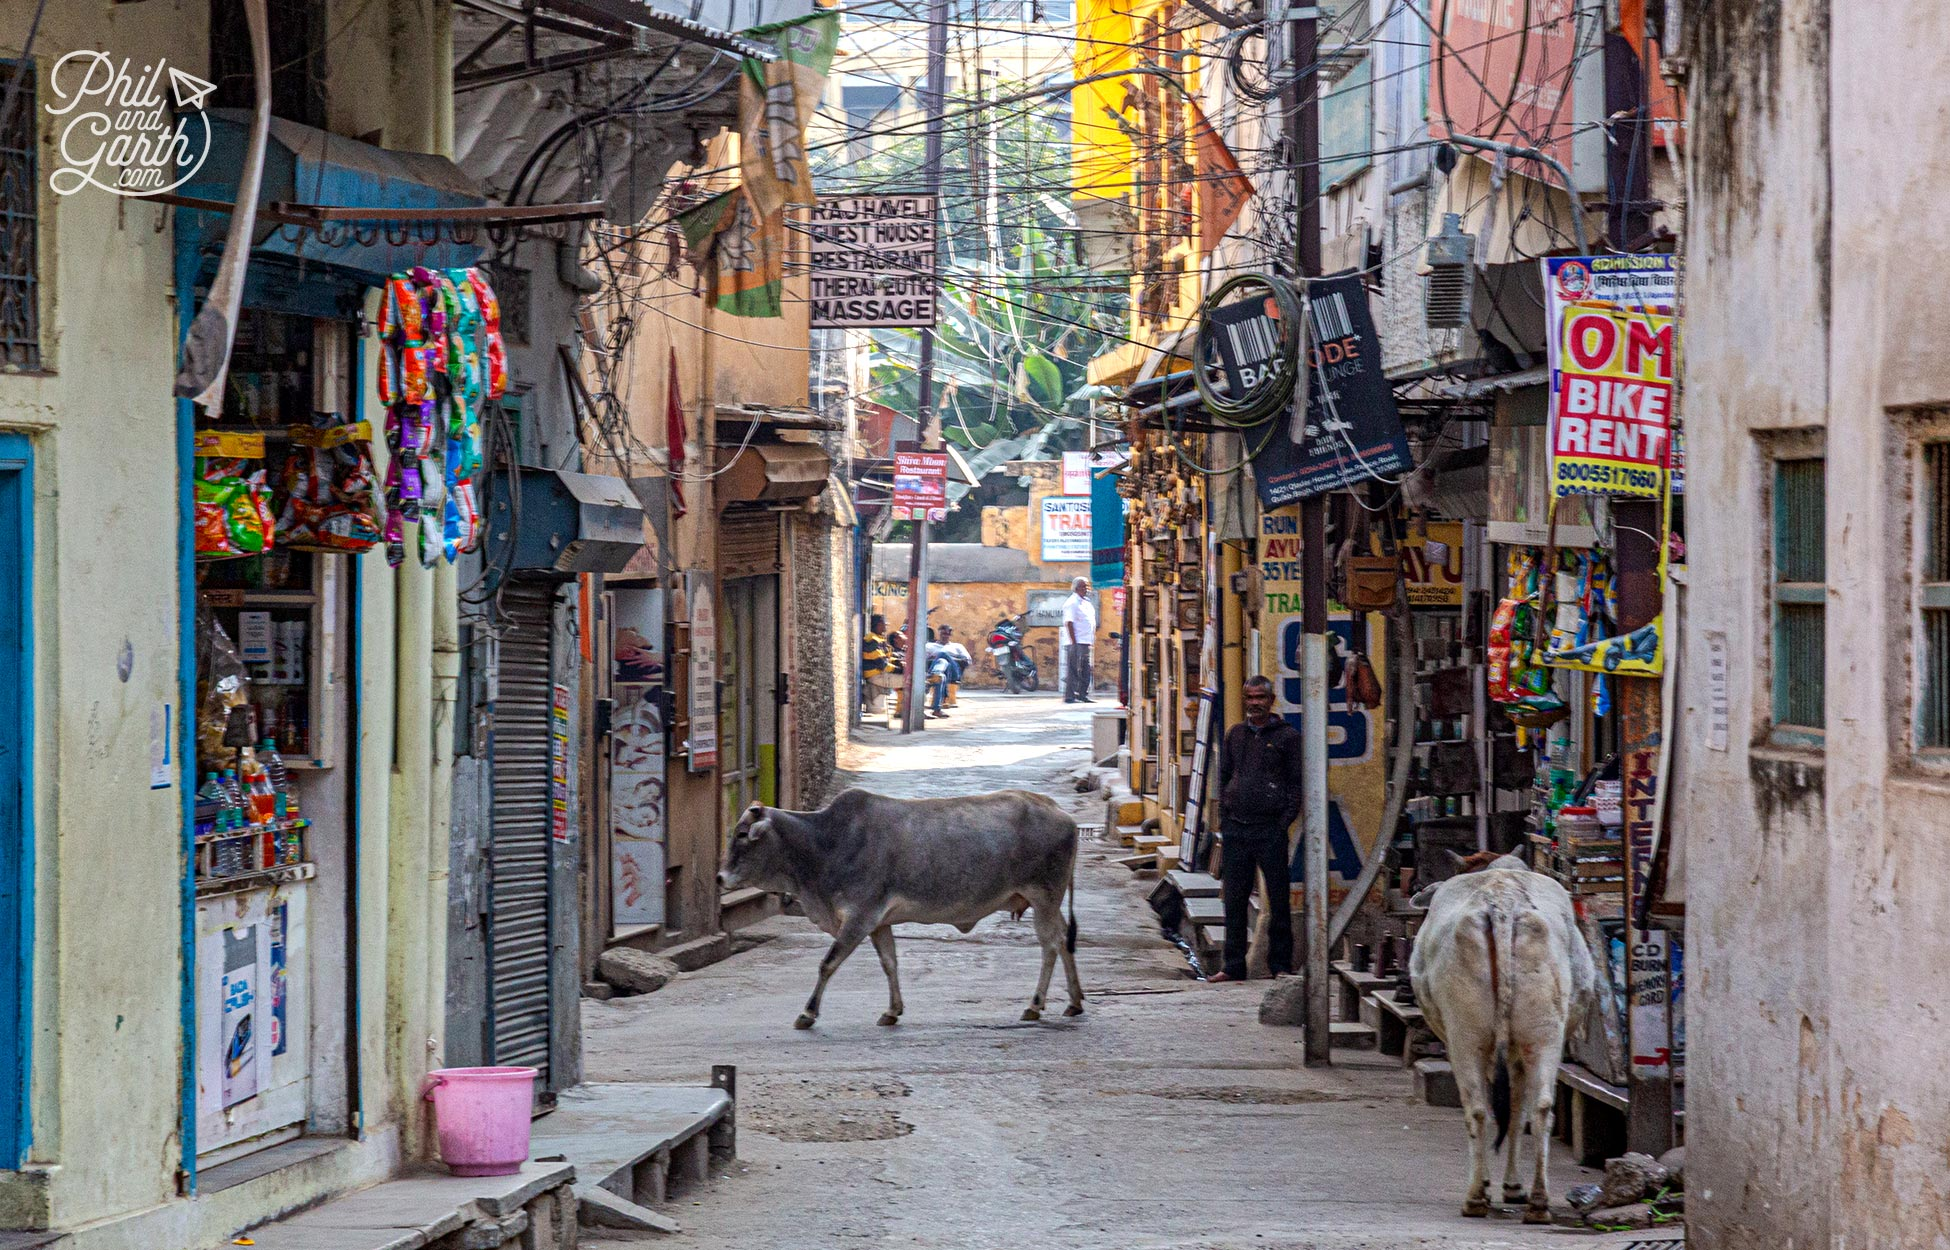 Don't be surprised to see holy cows wandering around the streets